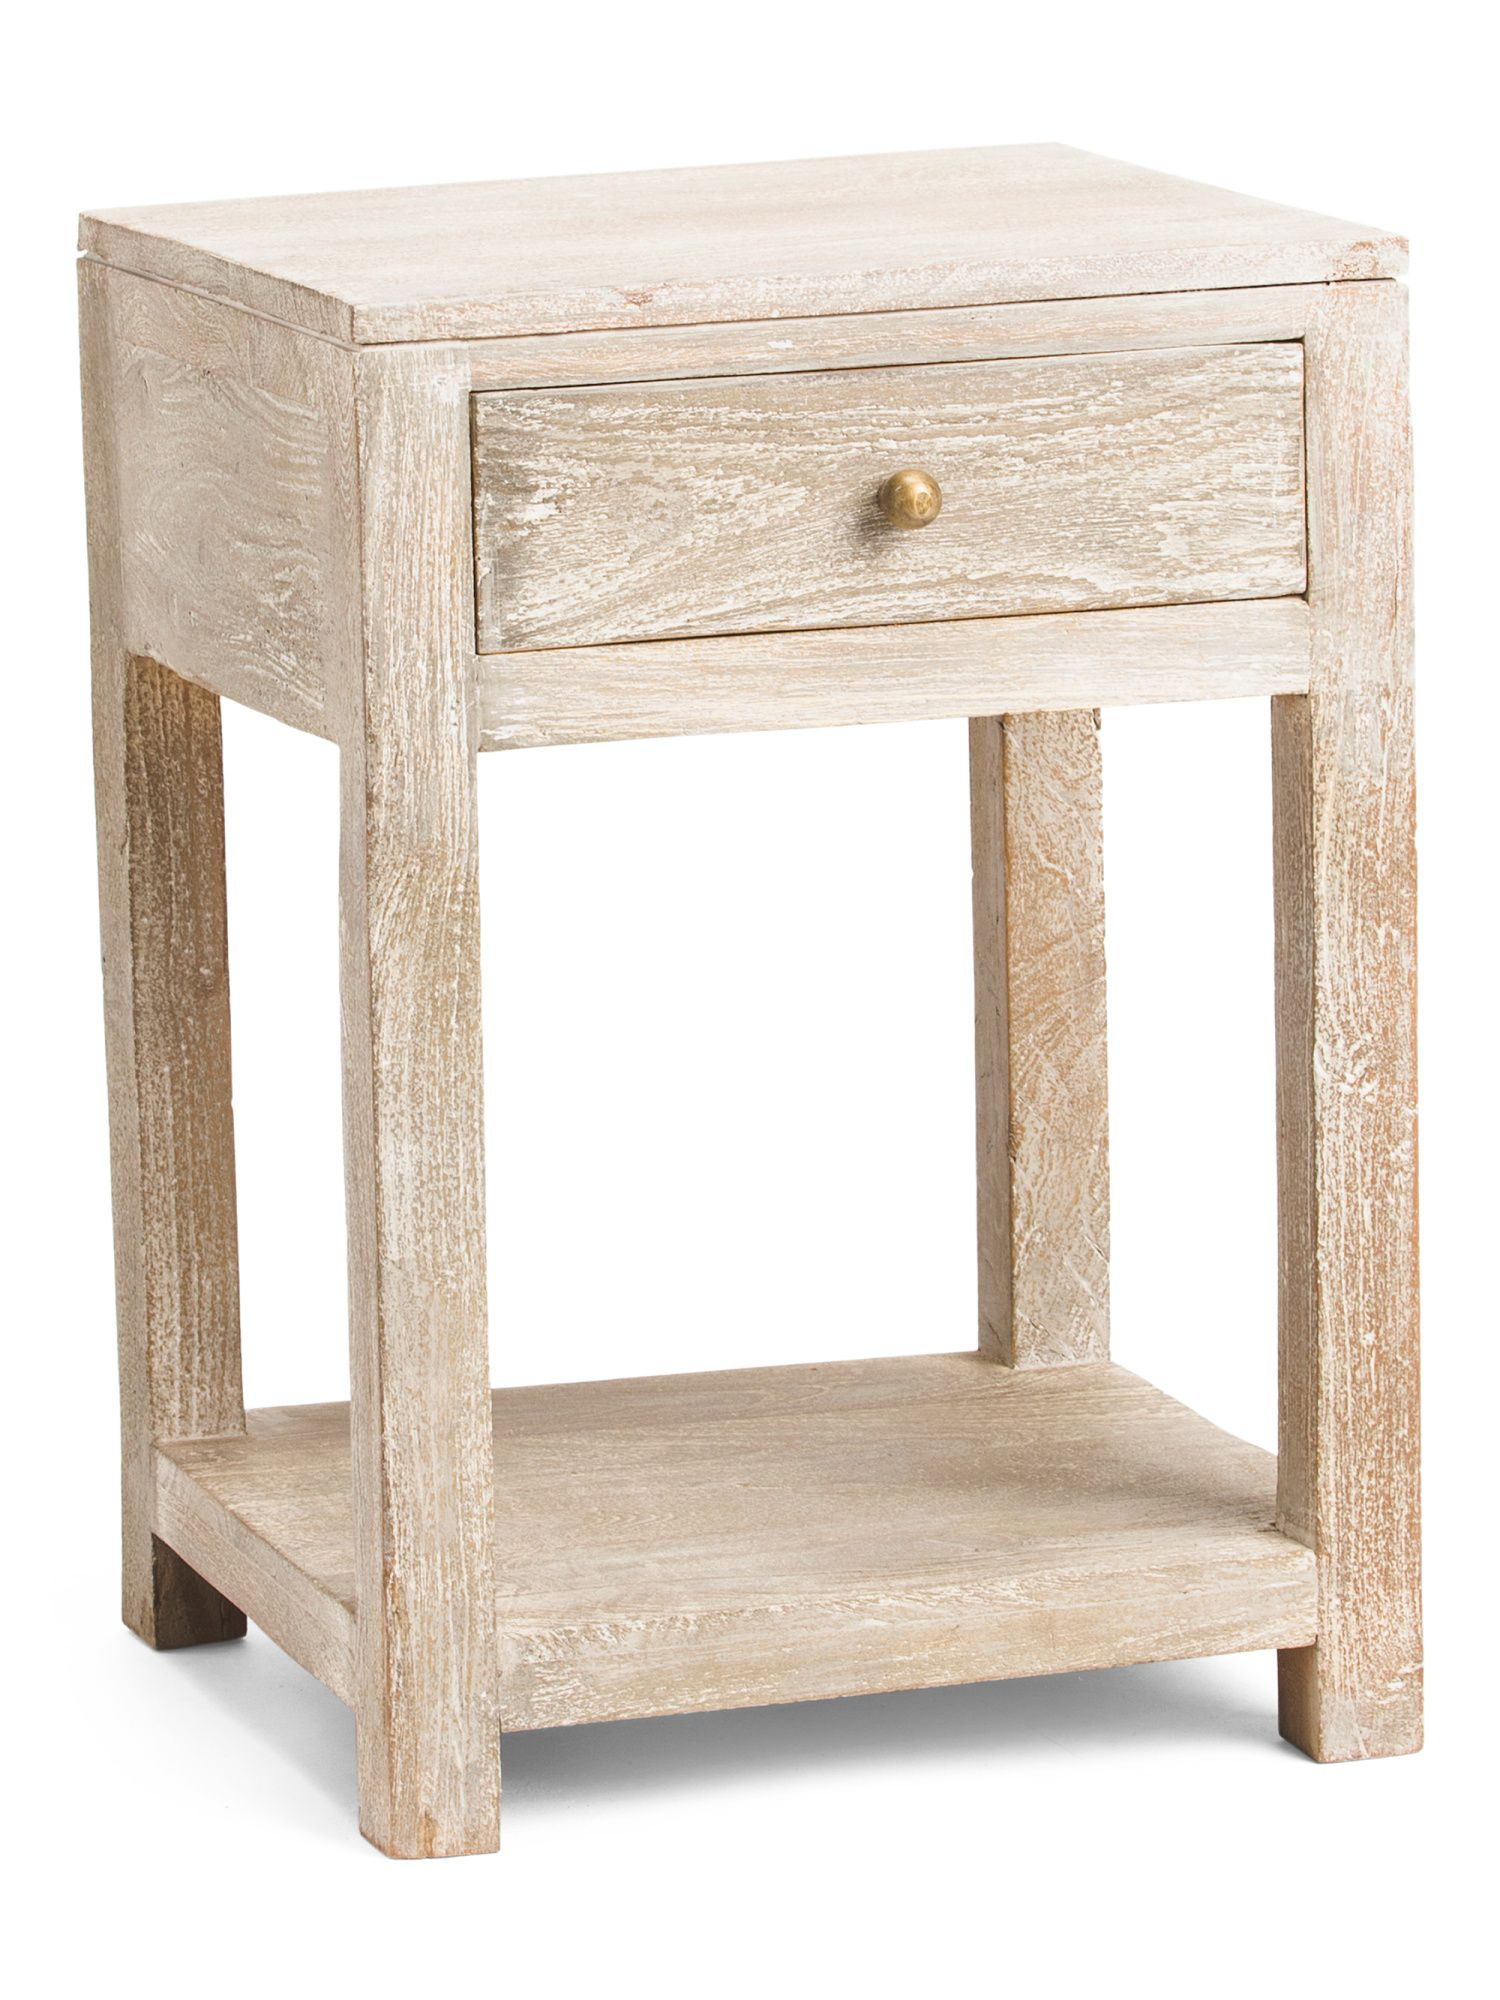 high resolution image | End tables, Furnishings, Table